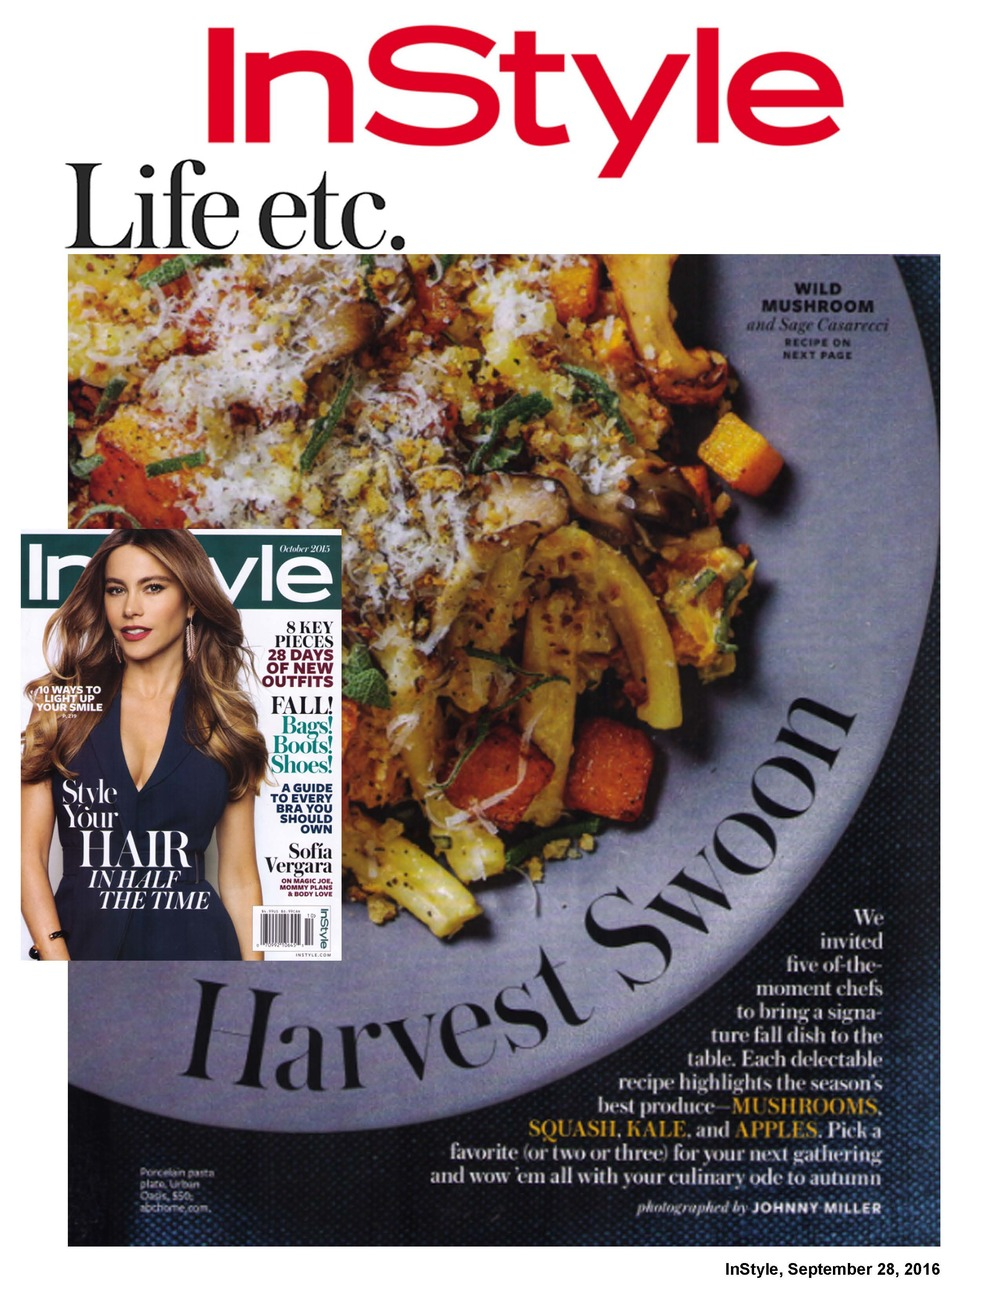 WEBSITE_InStyle_Four Seasons of Pasta_September 28 2015_page 1.jpg